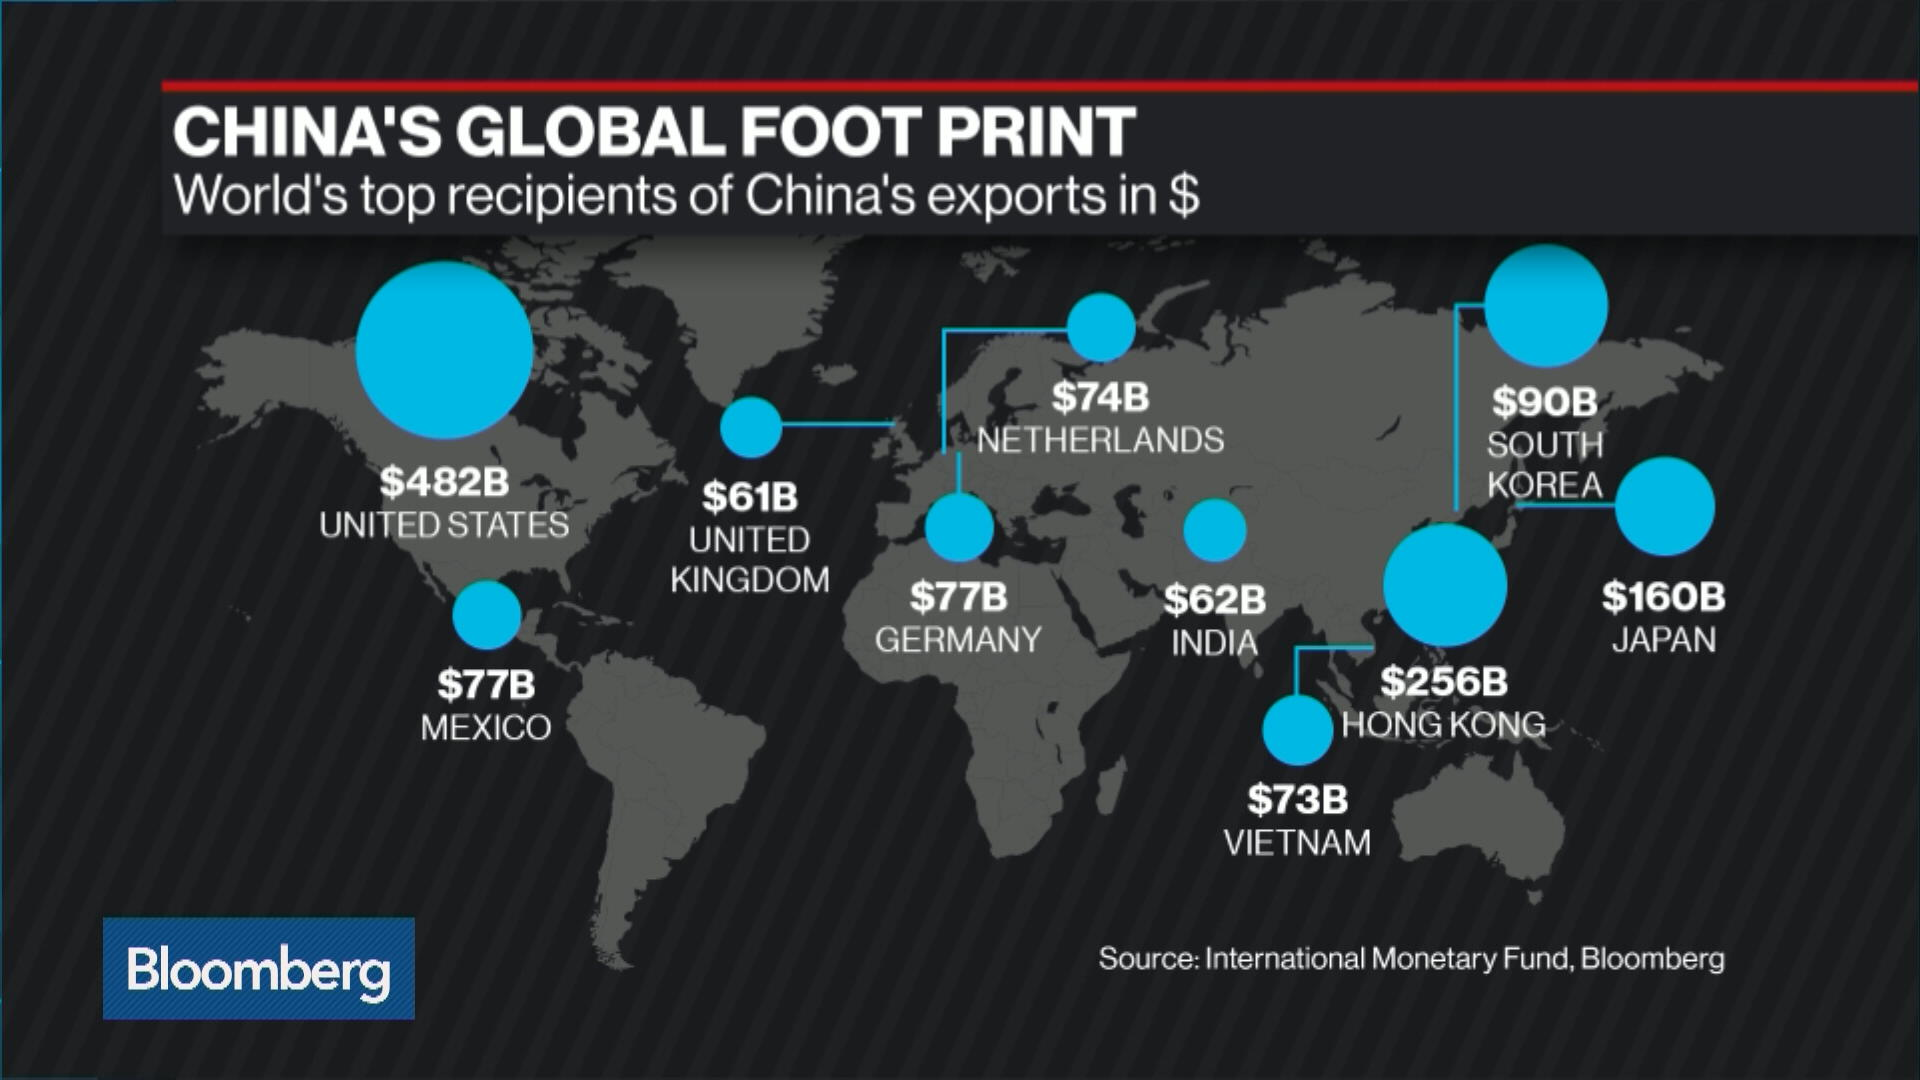 china globalization Watch video china is backing globalization for one very simple reason, according to allianz ceo oliver bäte: the country absolutely needs it.